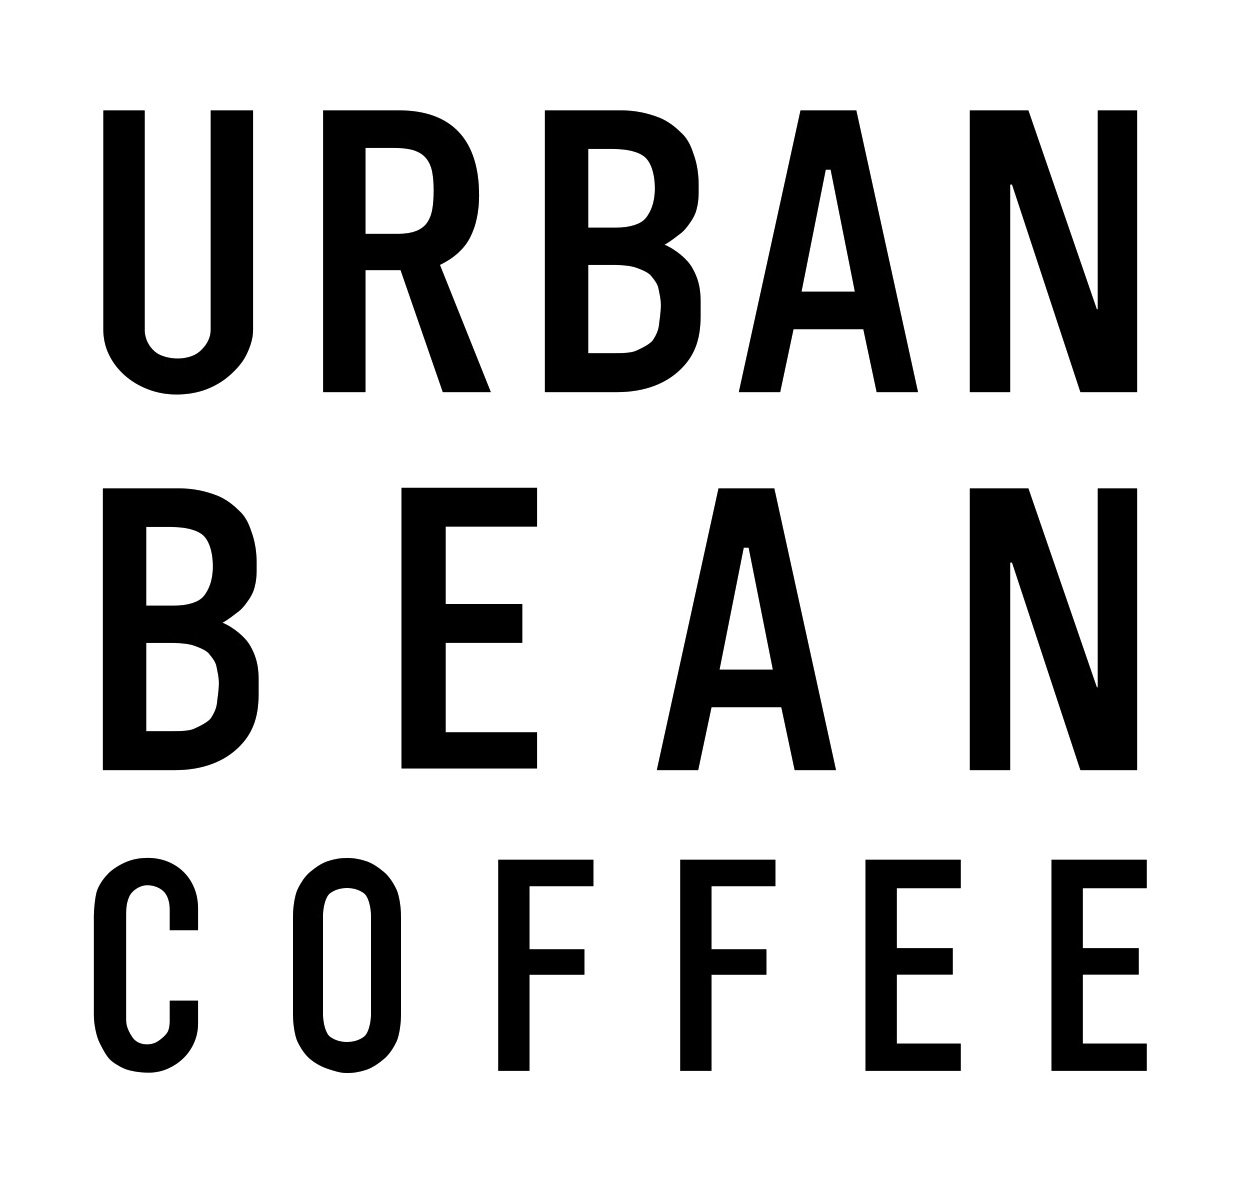 URBAN BEAN COFFEE